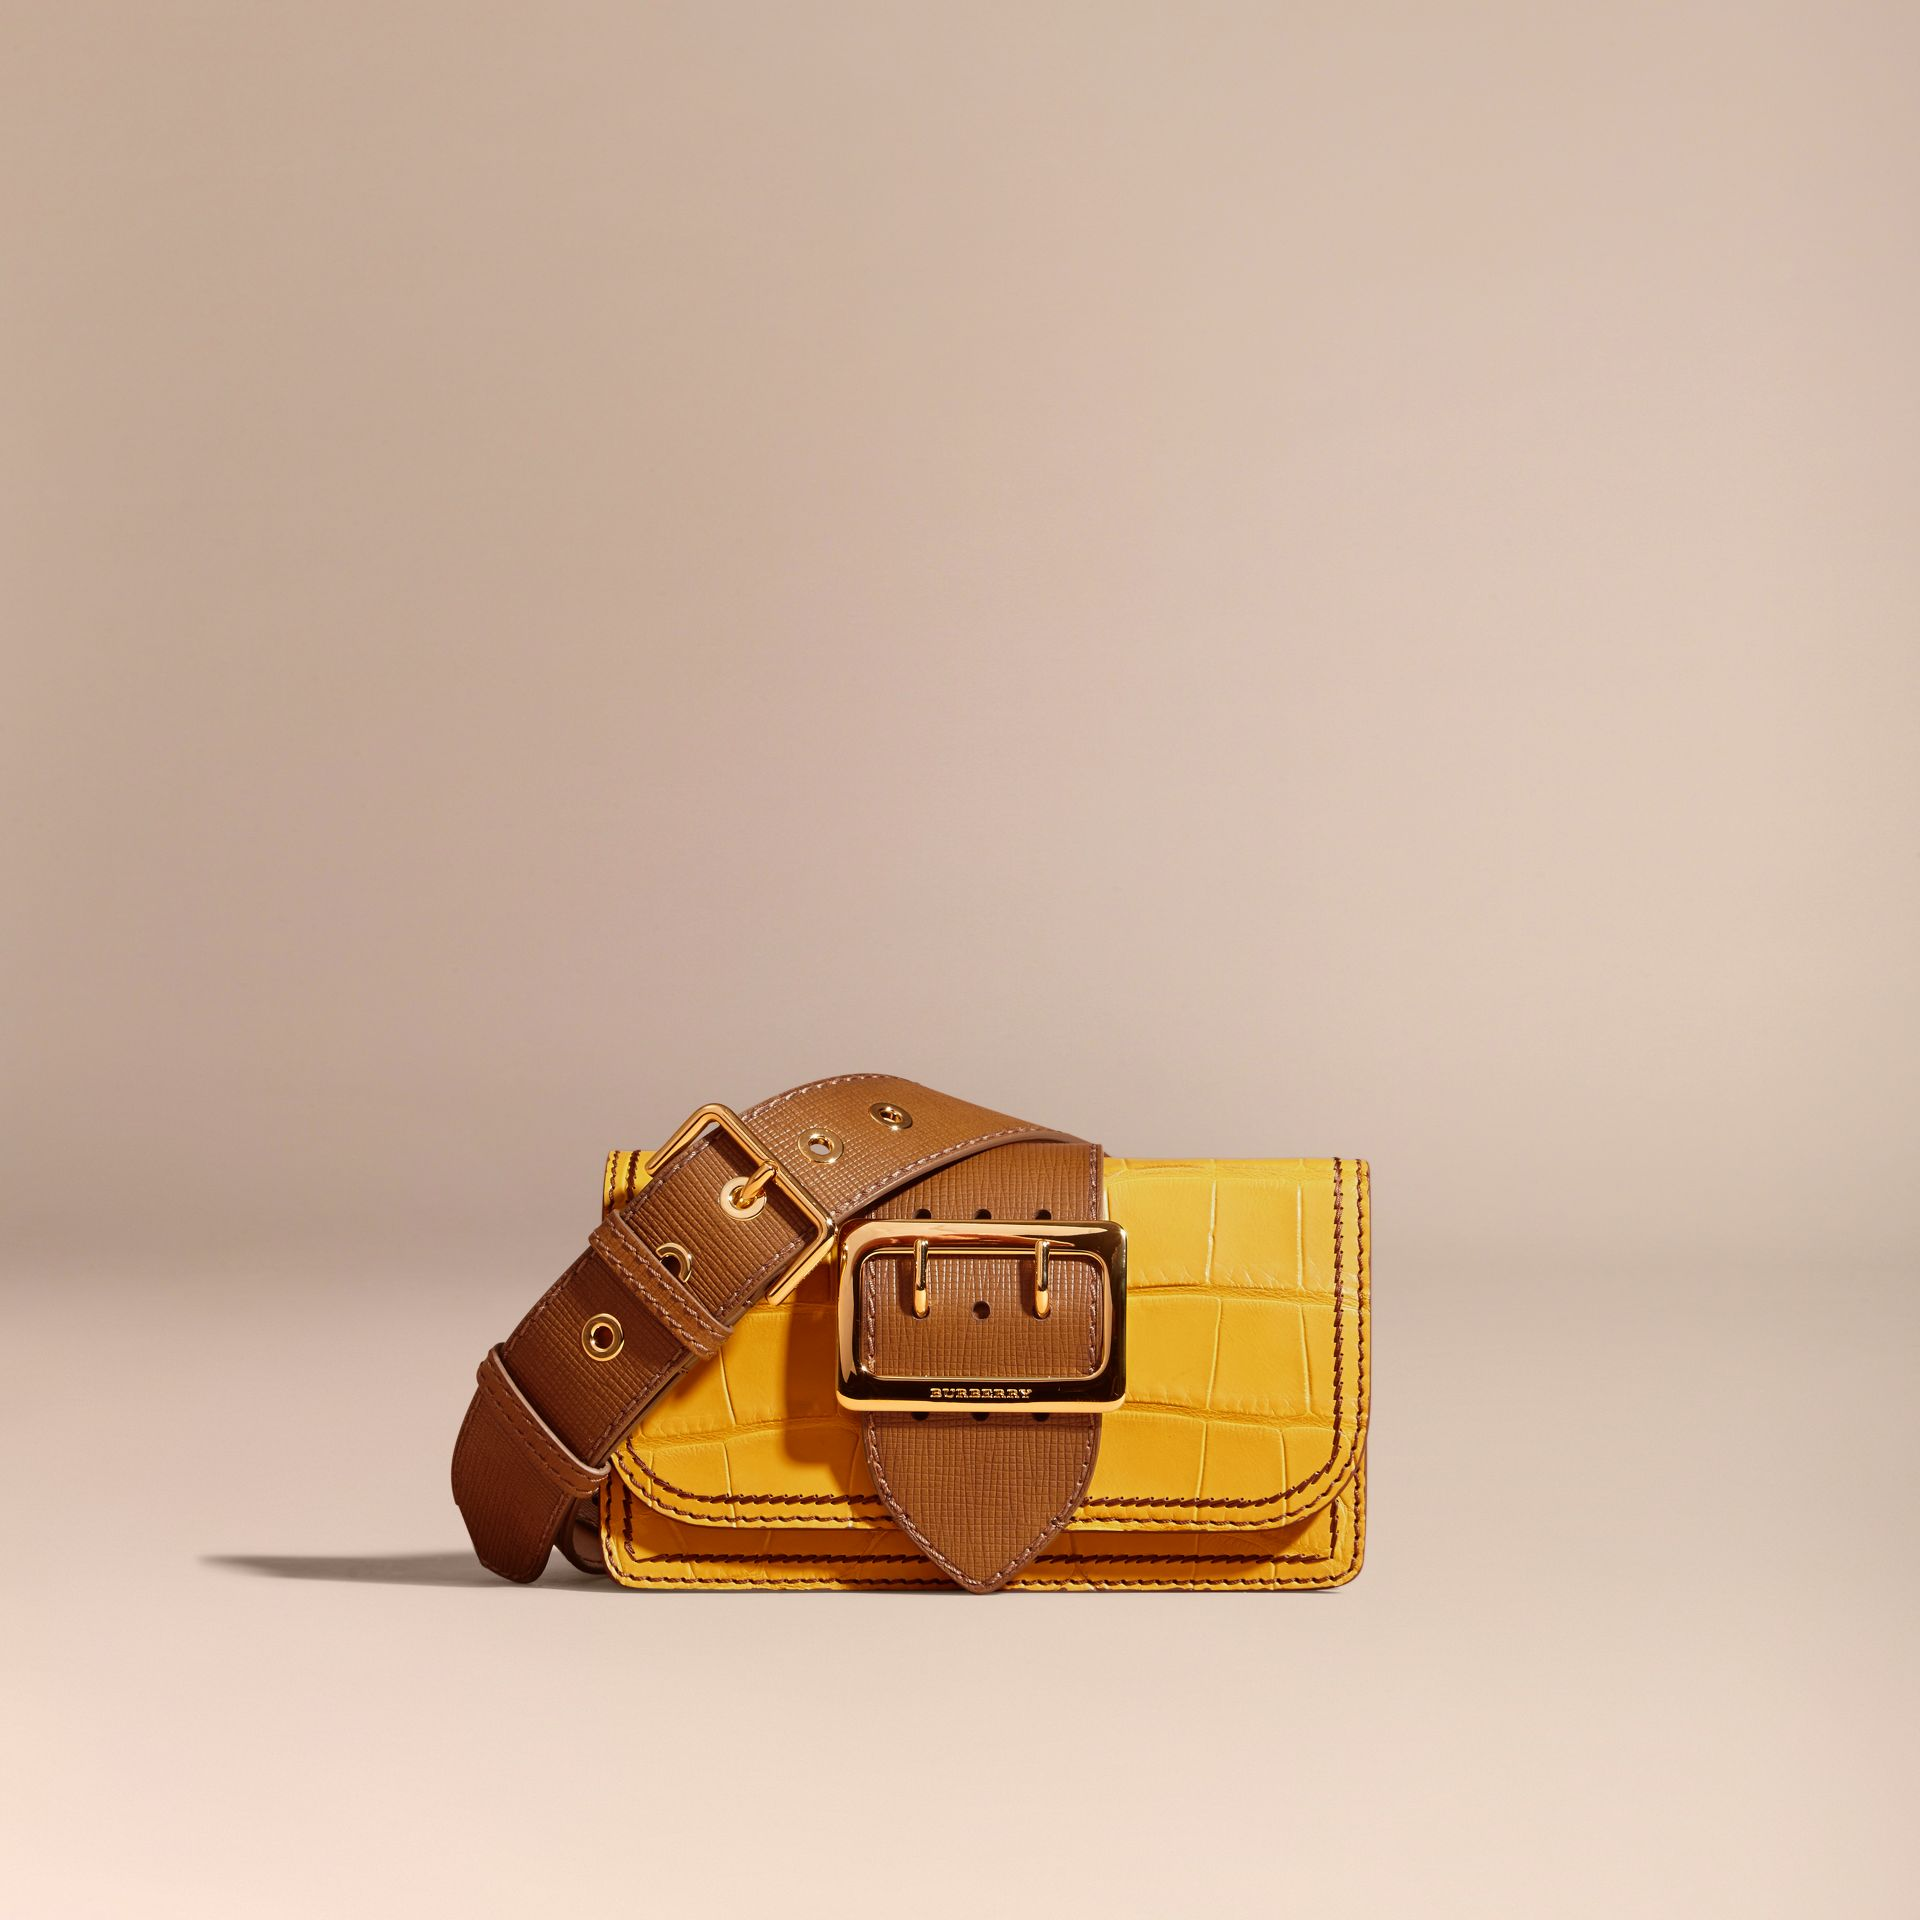 Citrus yellow / tan The Small Buckle Bag in Alligator and Leather Citrus Yellow / Tan - gallery image 9